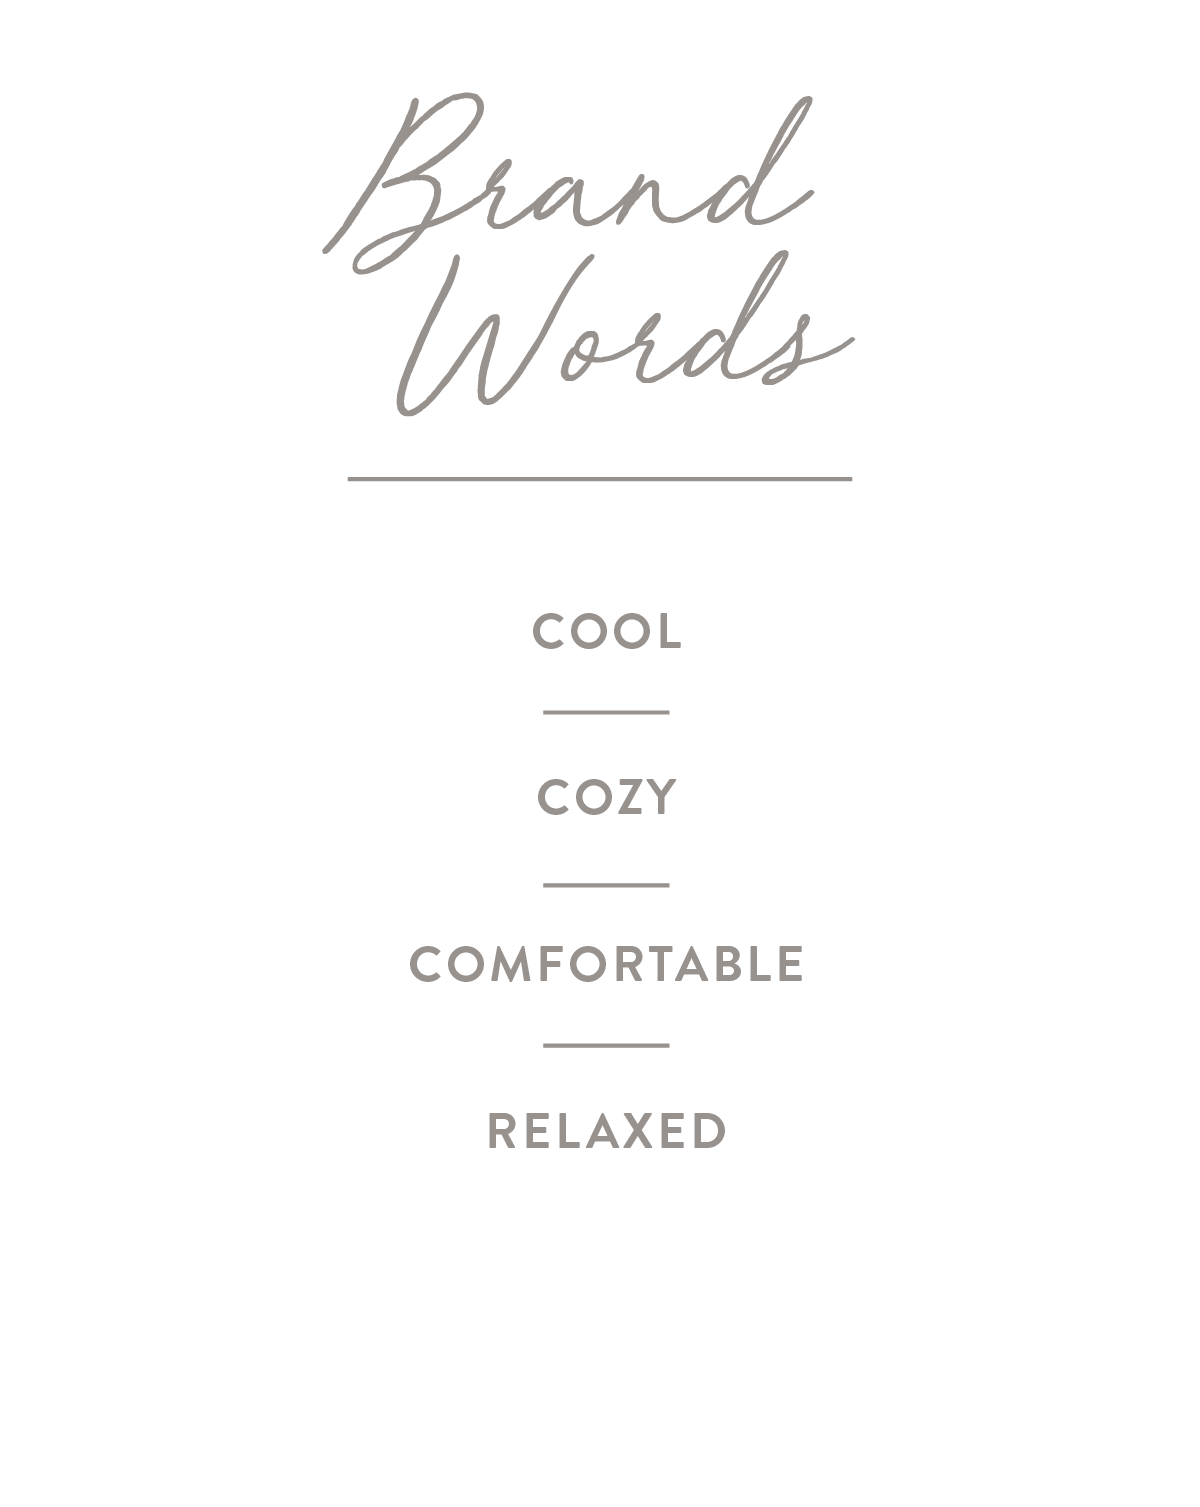 brand-words-01-02.png